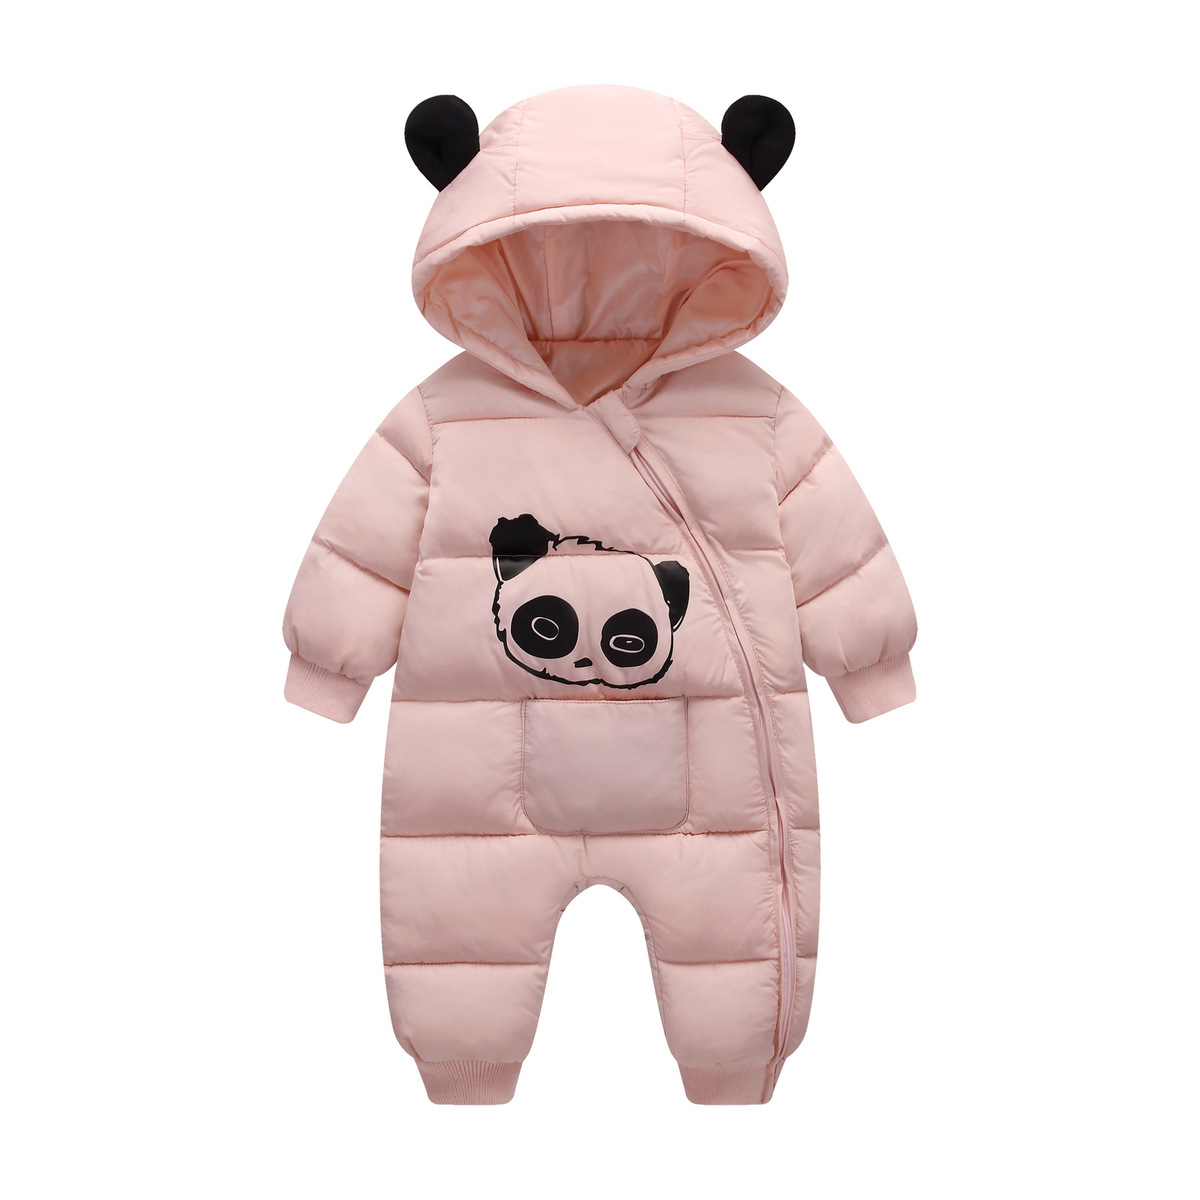 Spring Baby Rompers Plus Velvet Warm Hooded Jumpsuits For Baby Girls Clothes 2019 New Year Baby Boy Girl Rompers Bodysuits & One-pieces